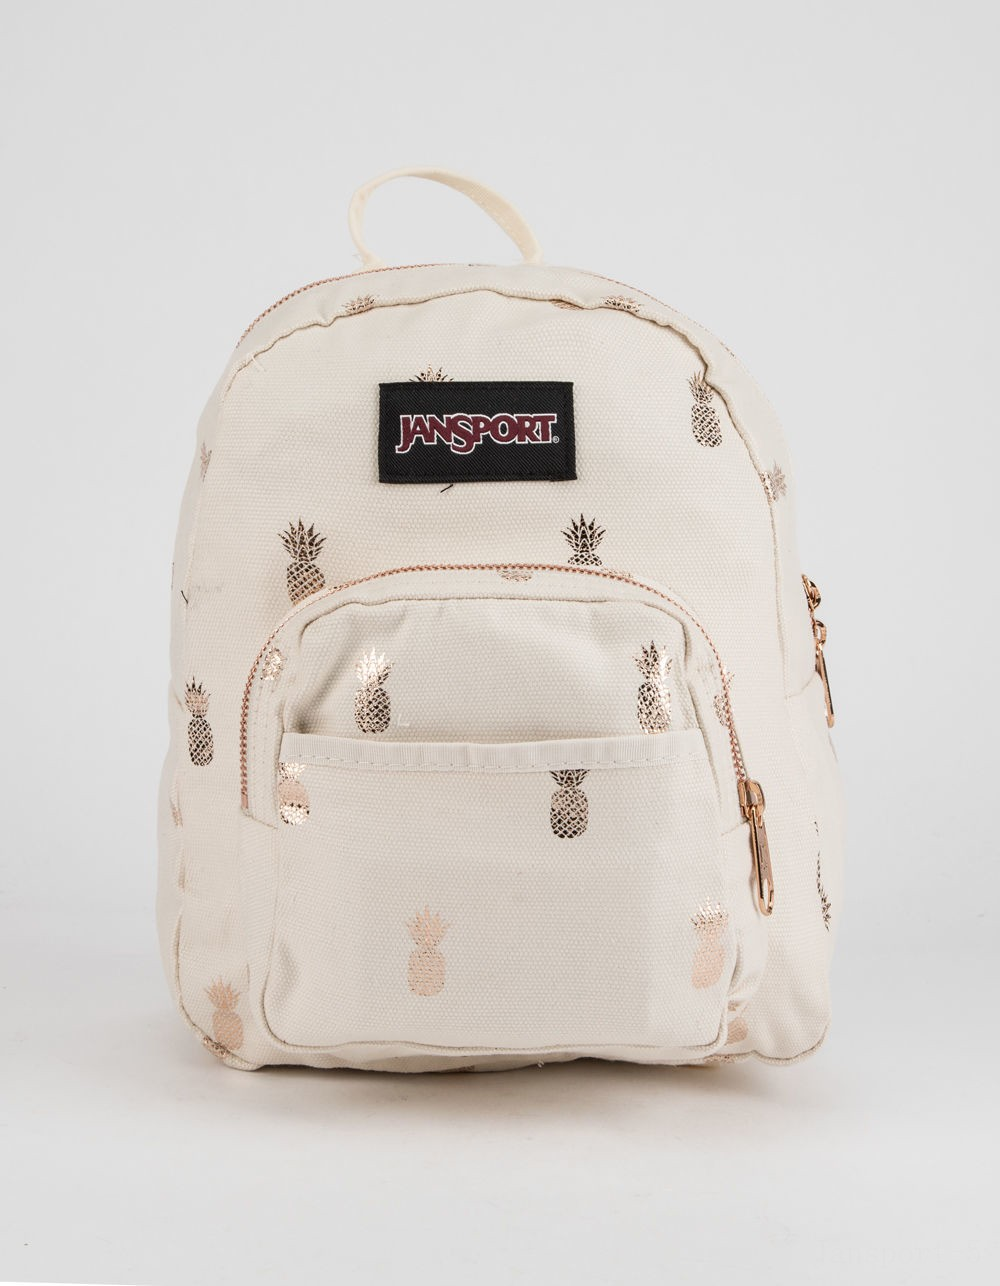 best price jansport half pint isabella pineapple mini backpack natural last chance limited sale